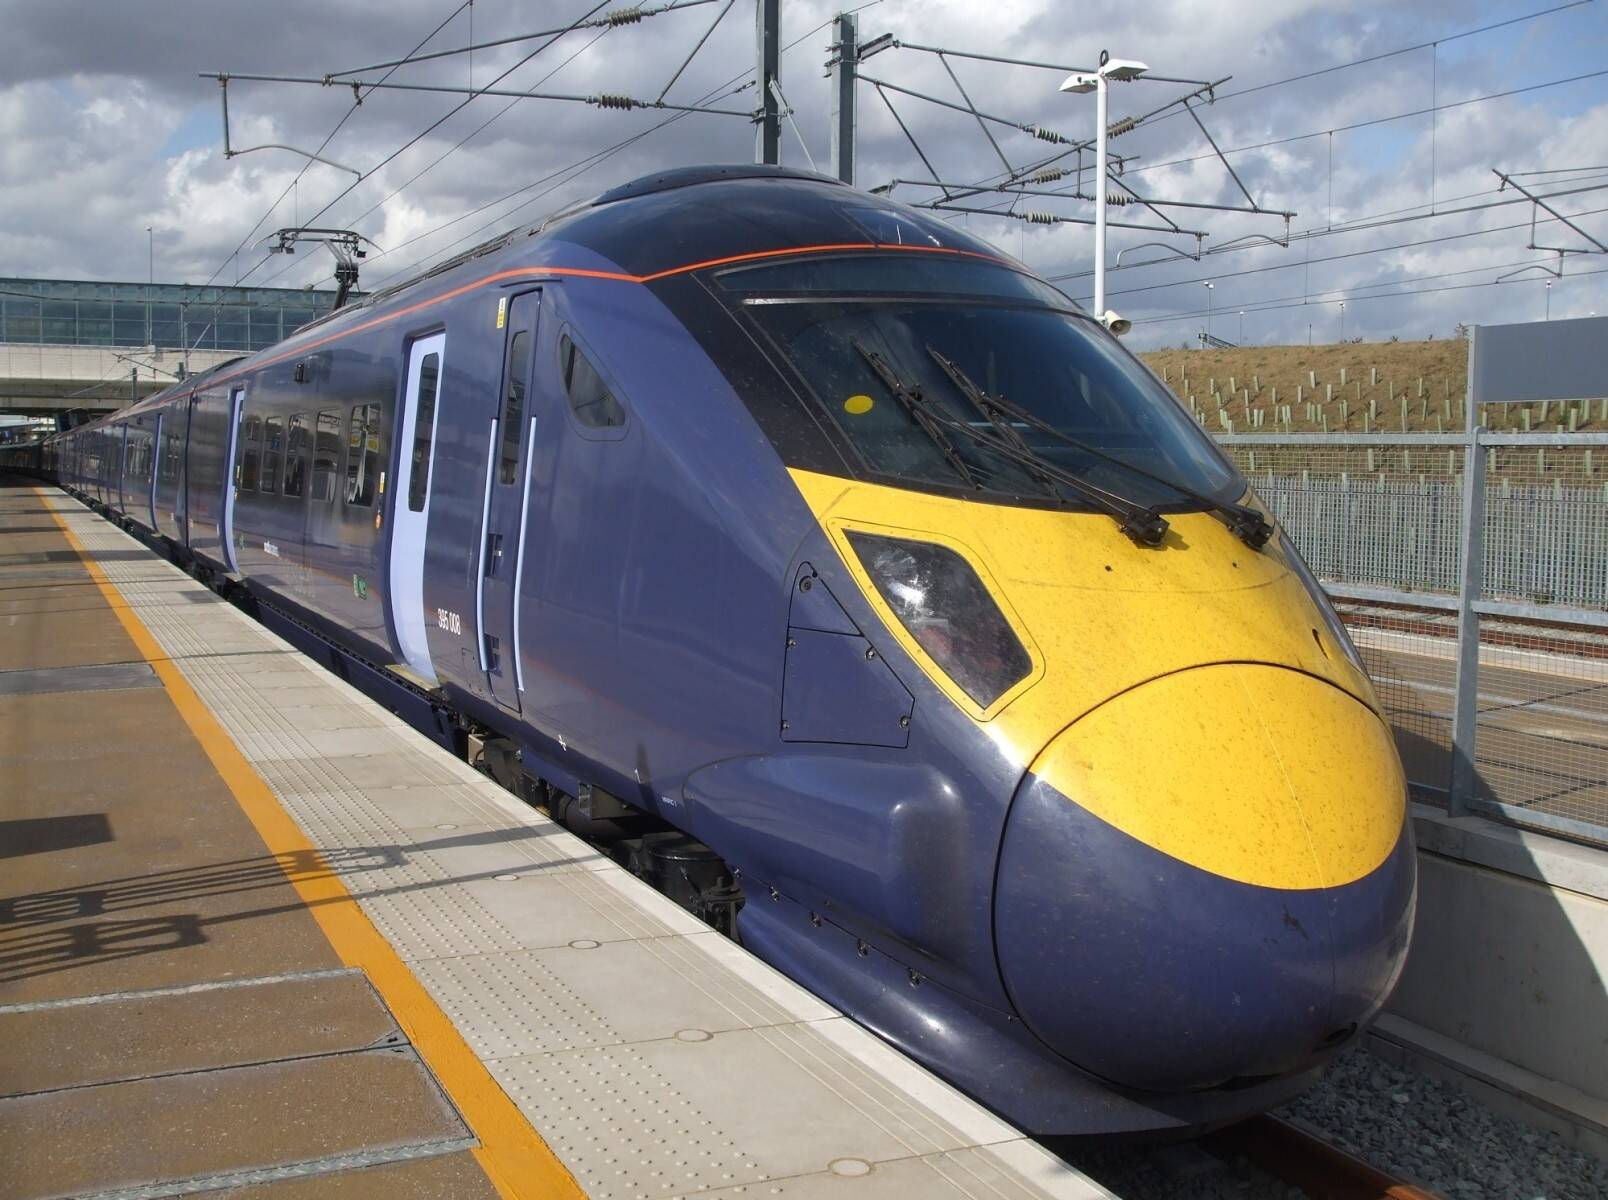 Conflict of interest fears raised over HS2 interim chief